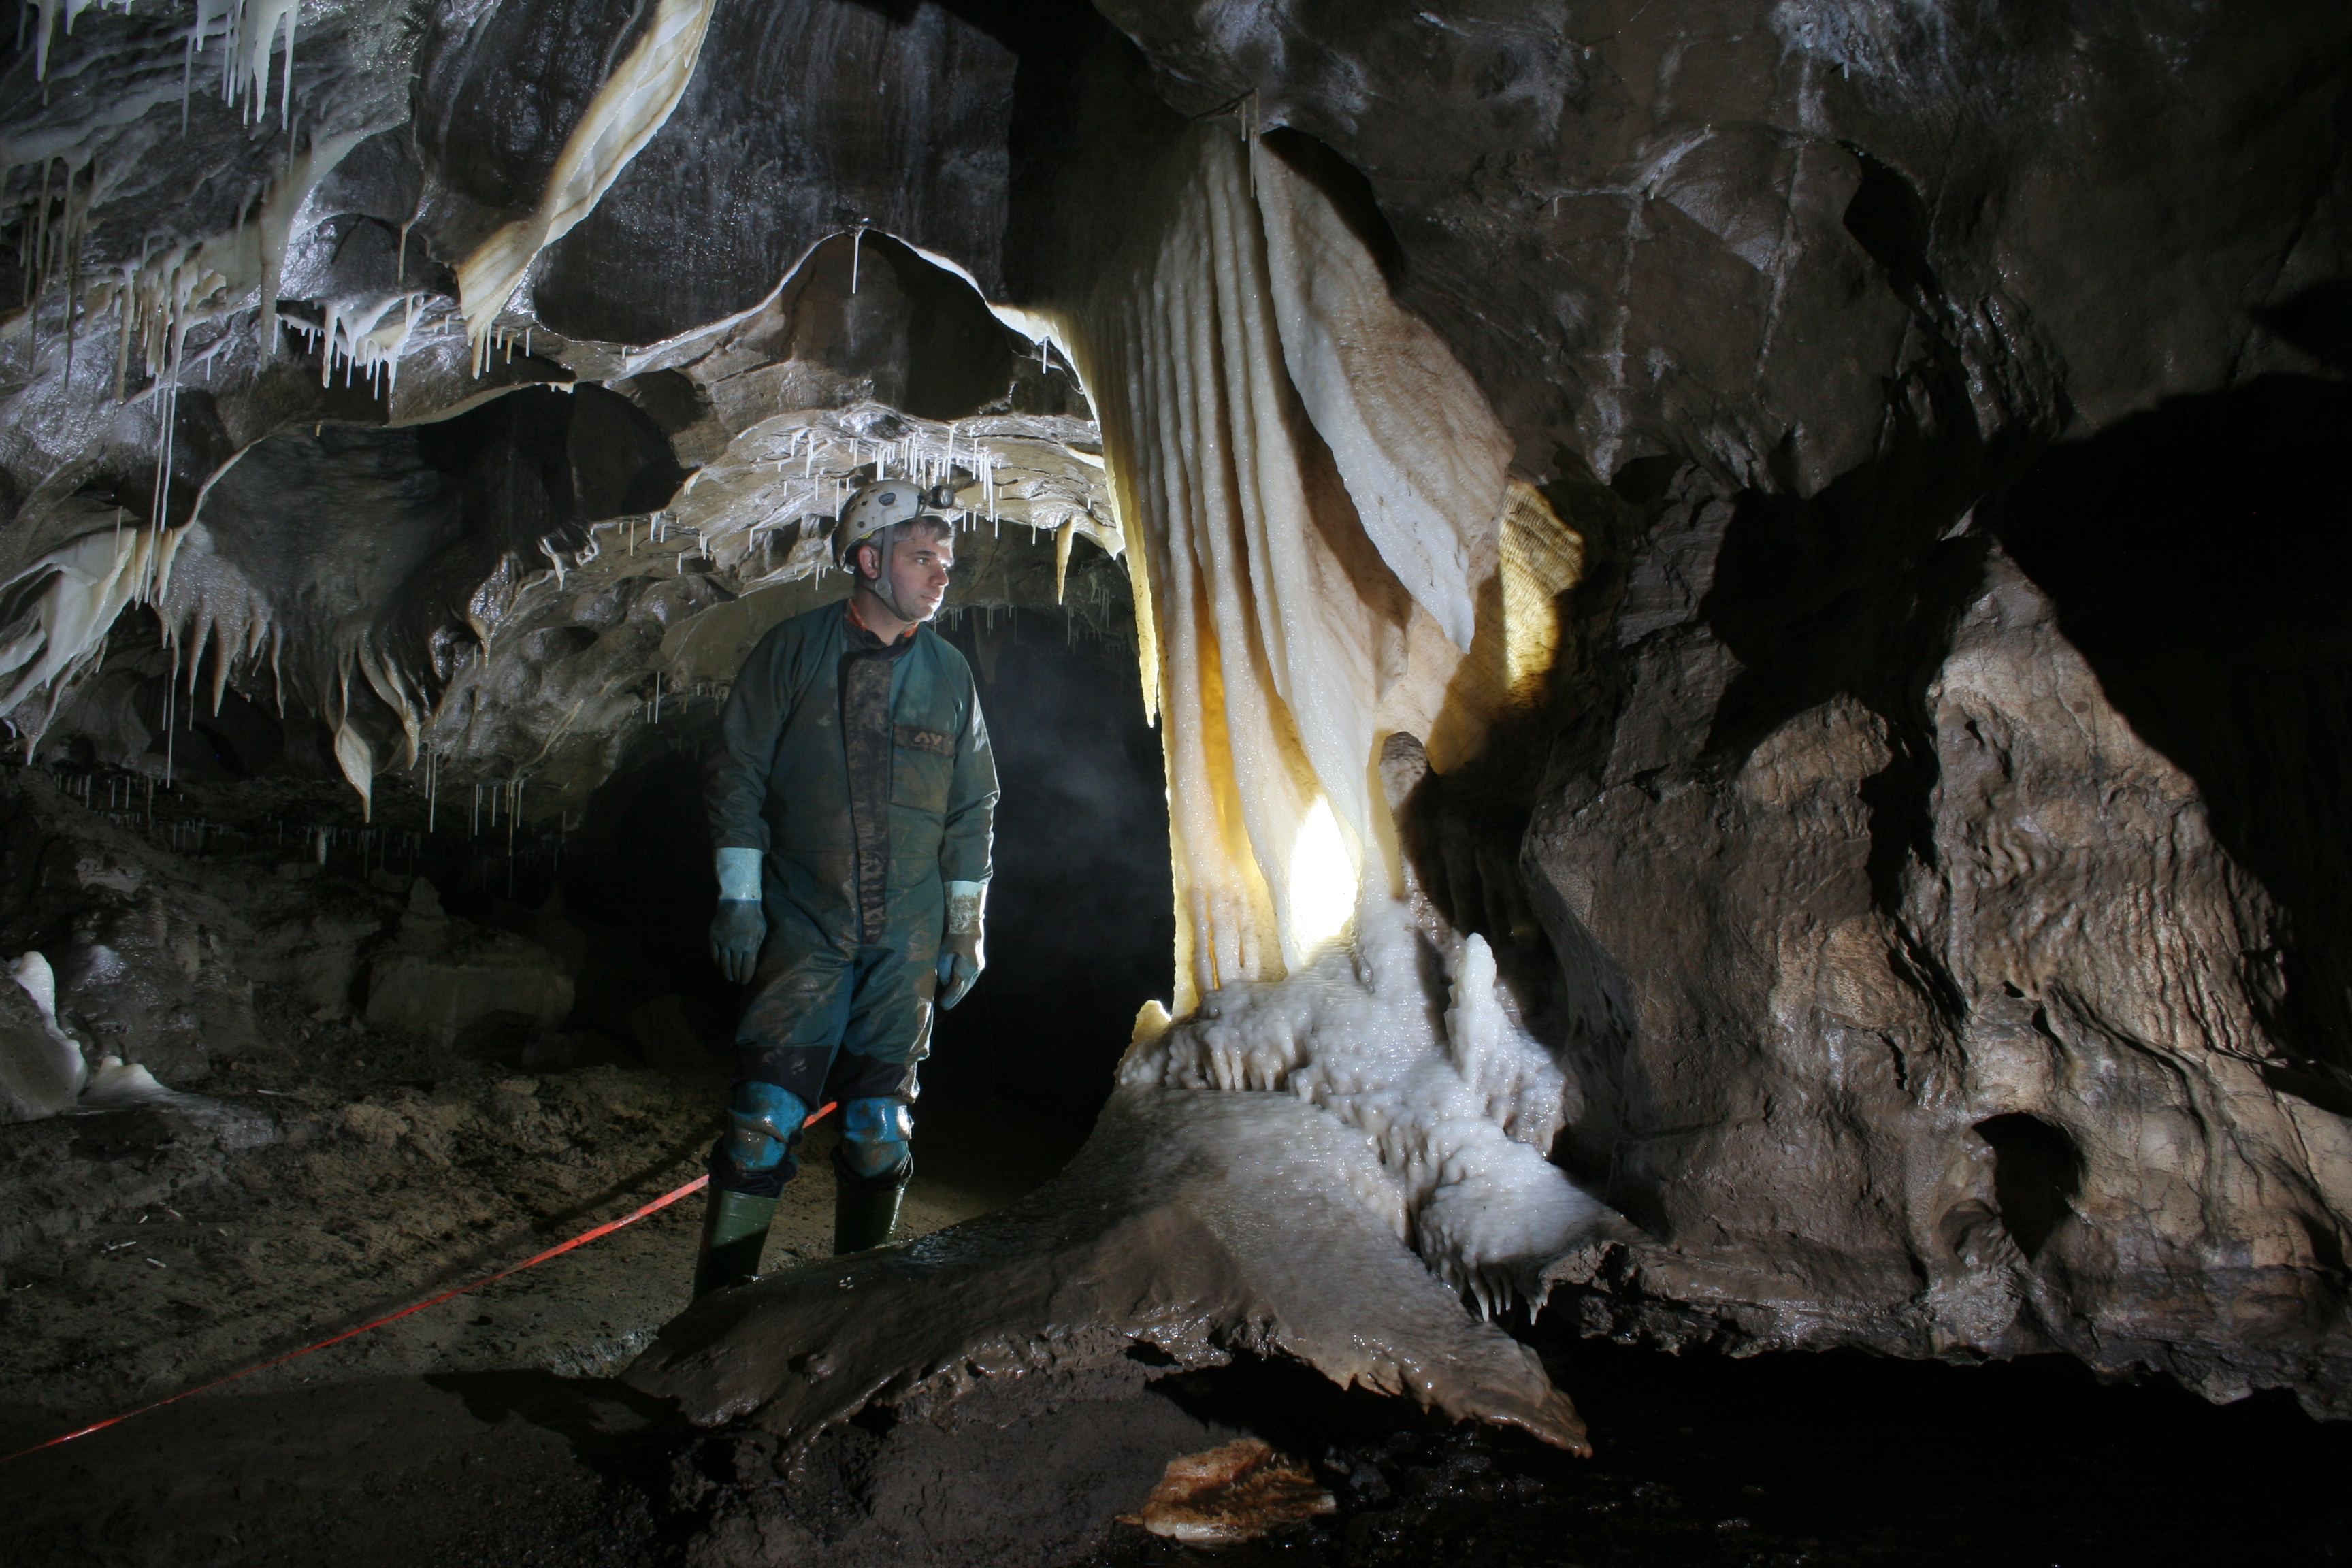 Caving Formations in Notts II, Yorkshire